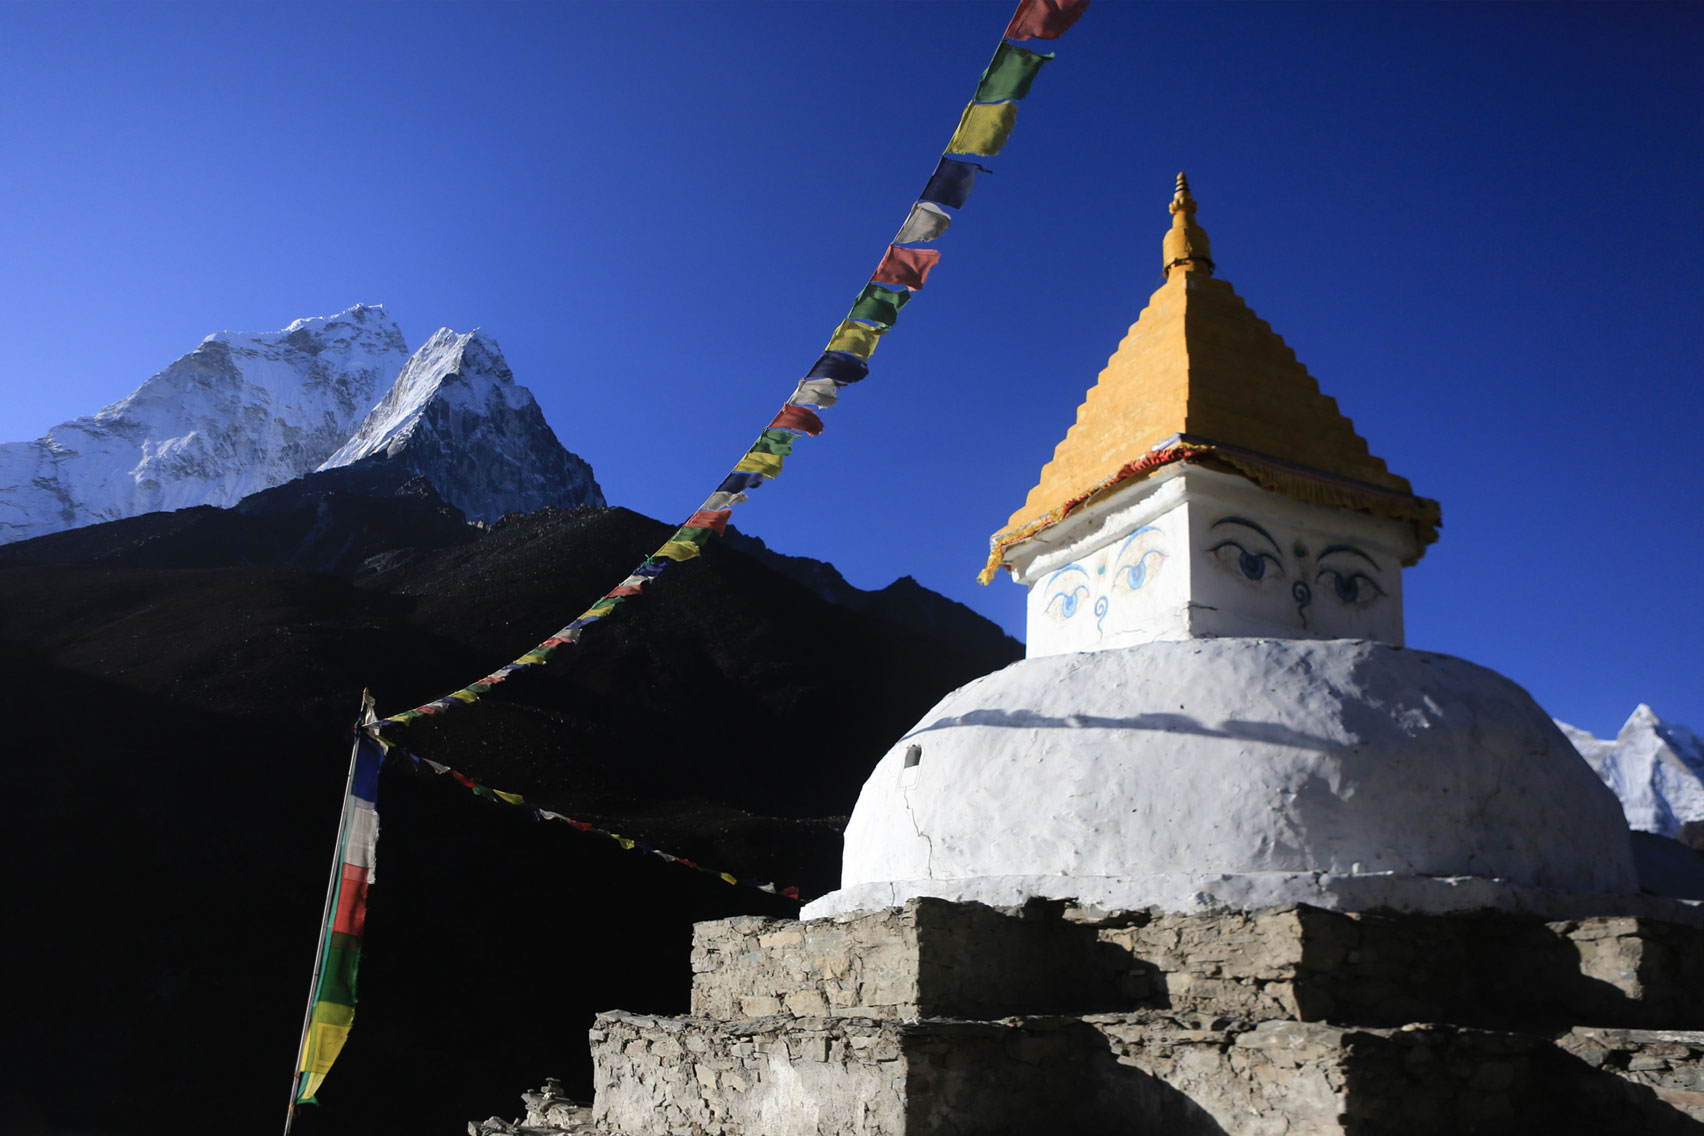 Day 8: Dingboche rest day